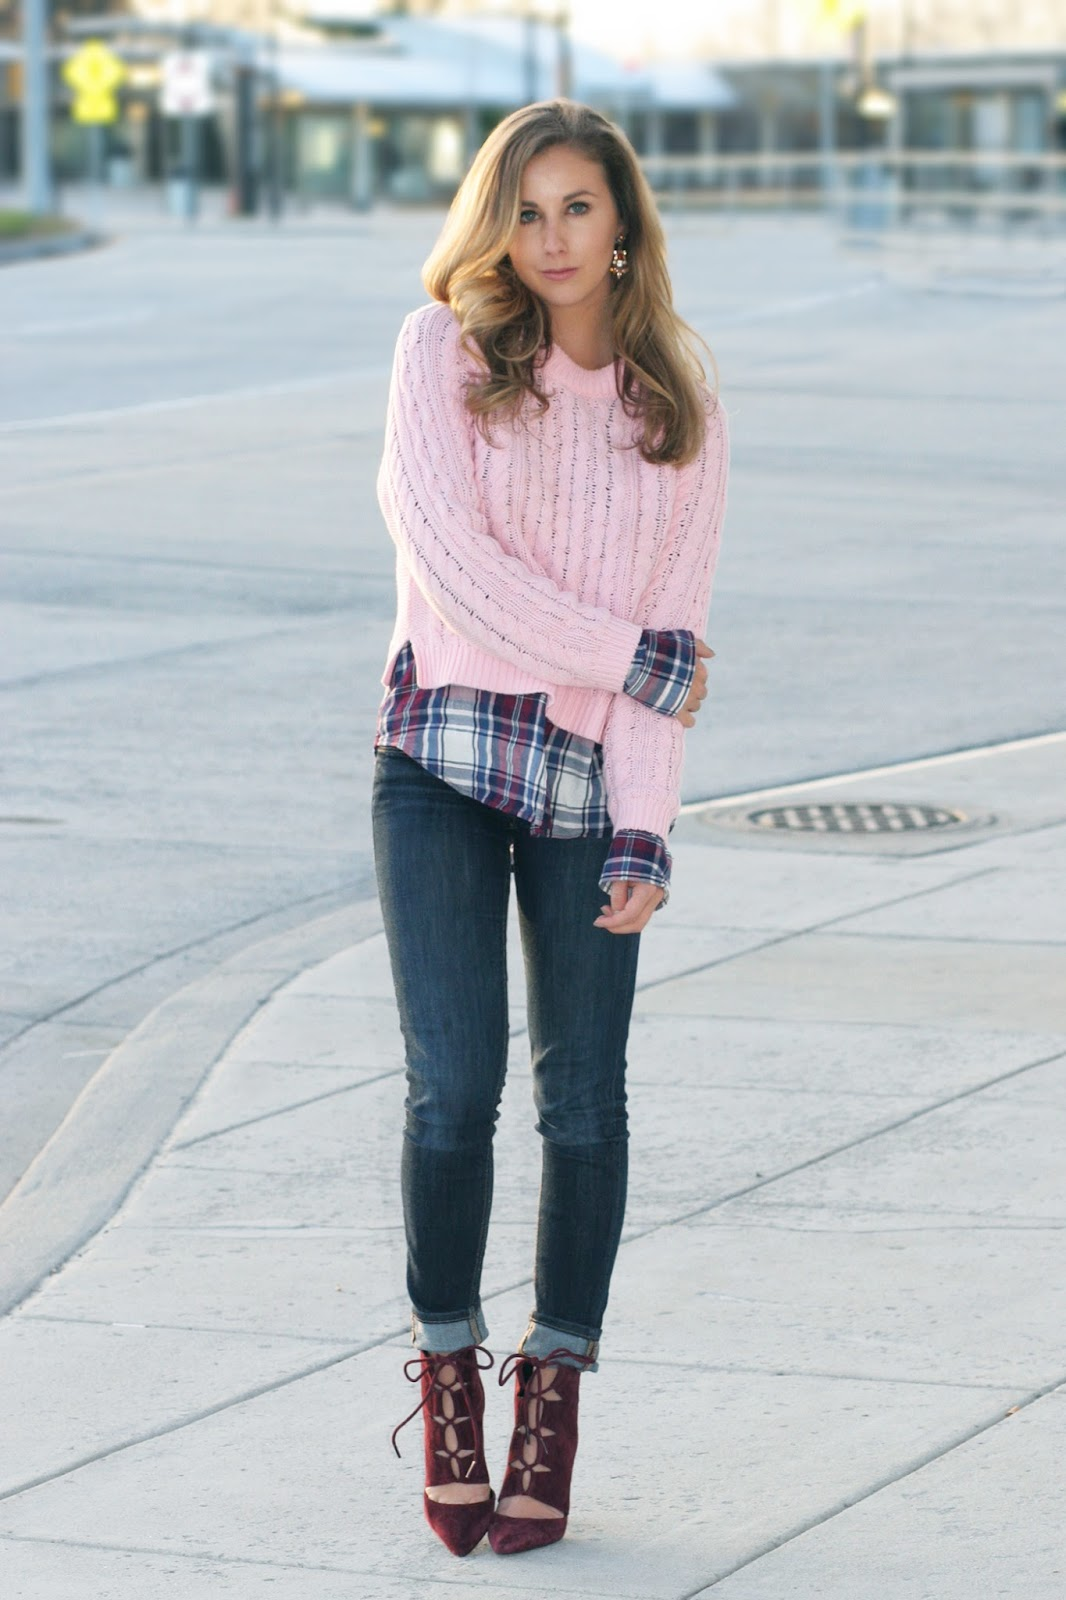 pink-cable-knit-sweater-for-winter-layered-with-plaid-top